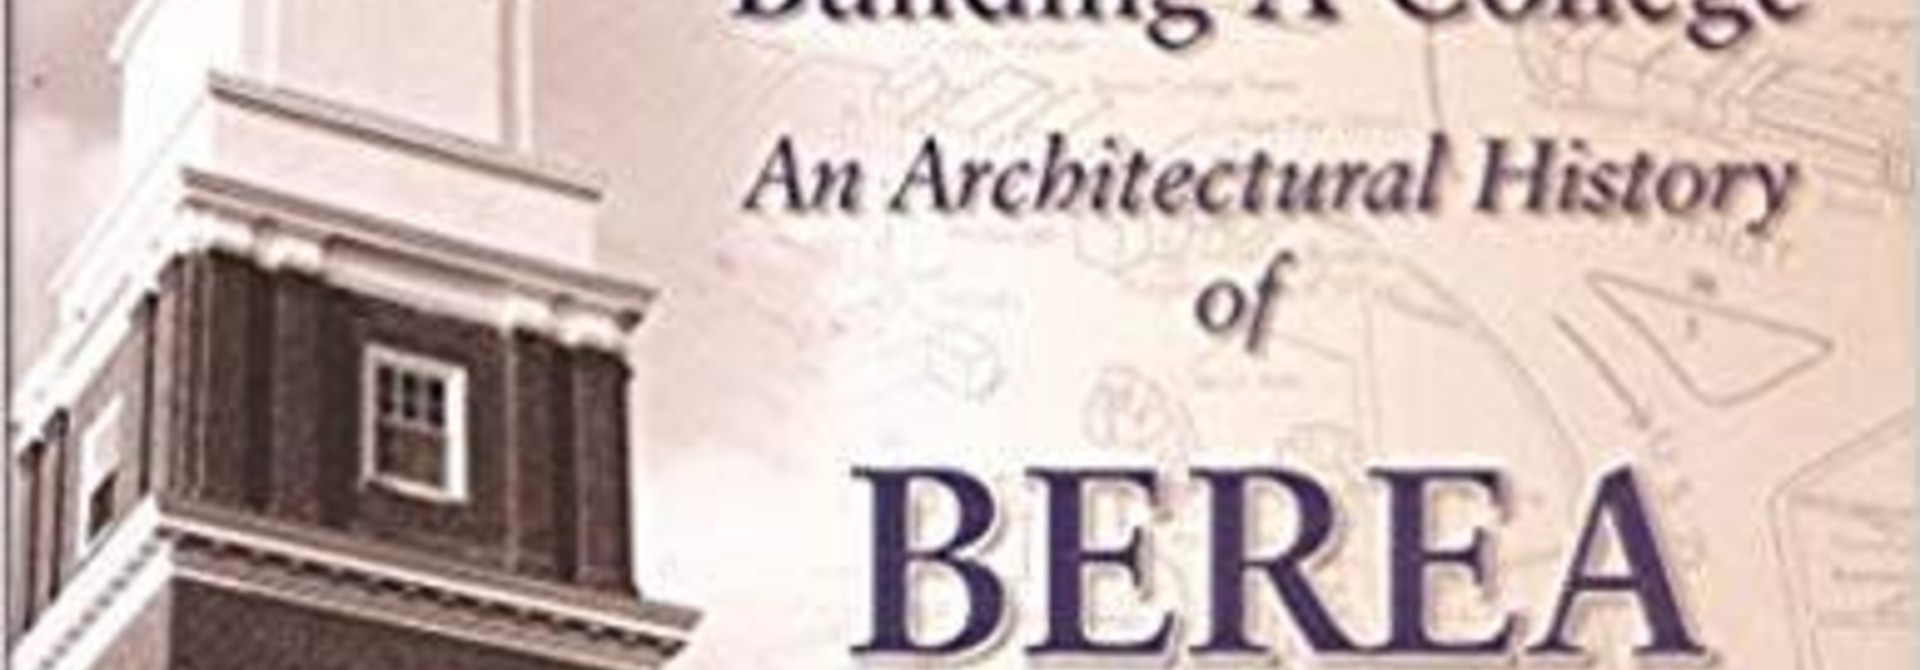 Building A College: An Architectural History of Berea College